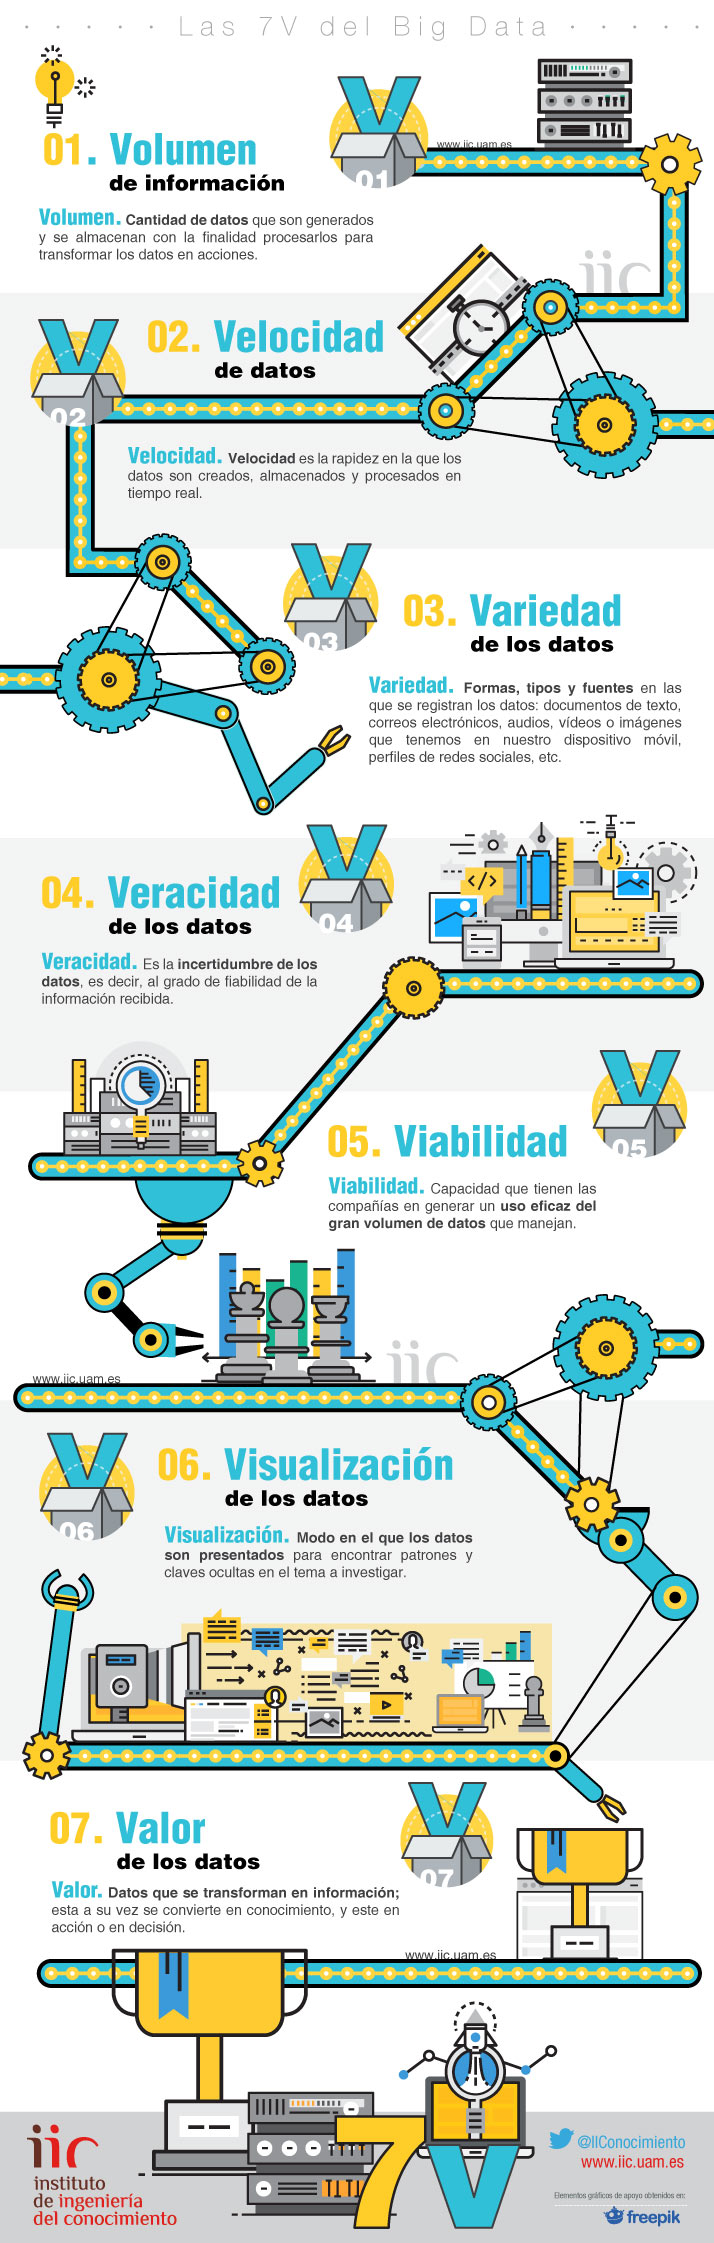 Big Data: las 7V